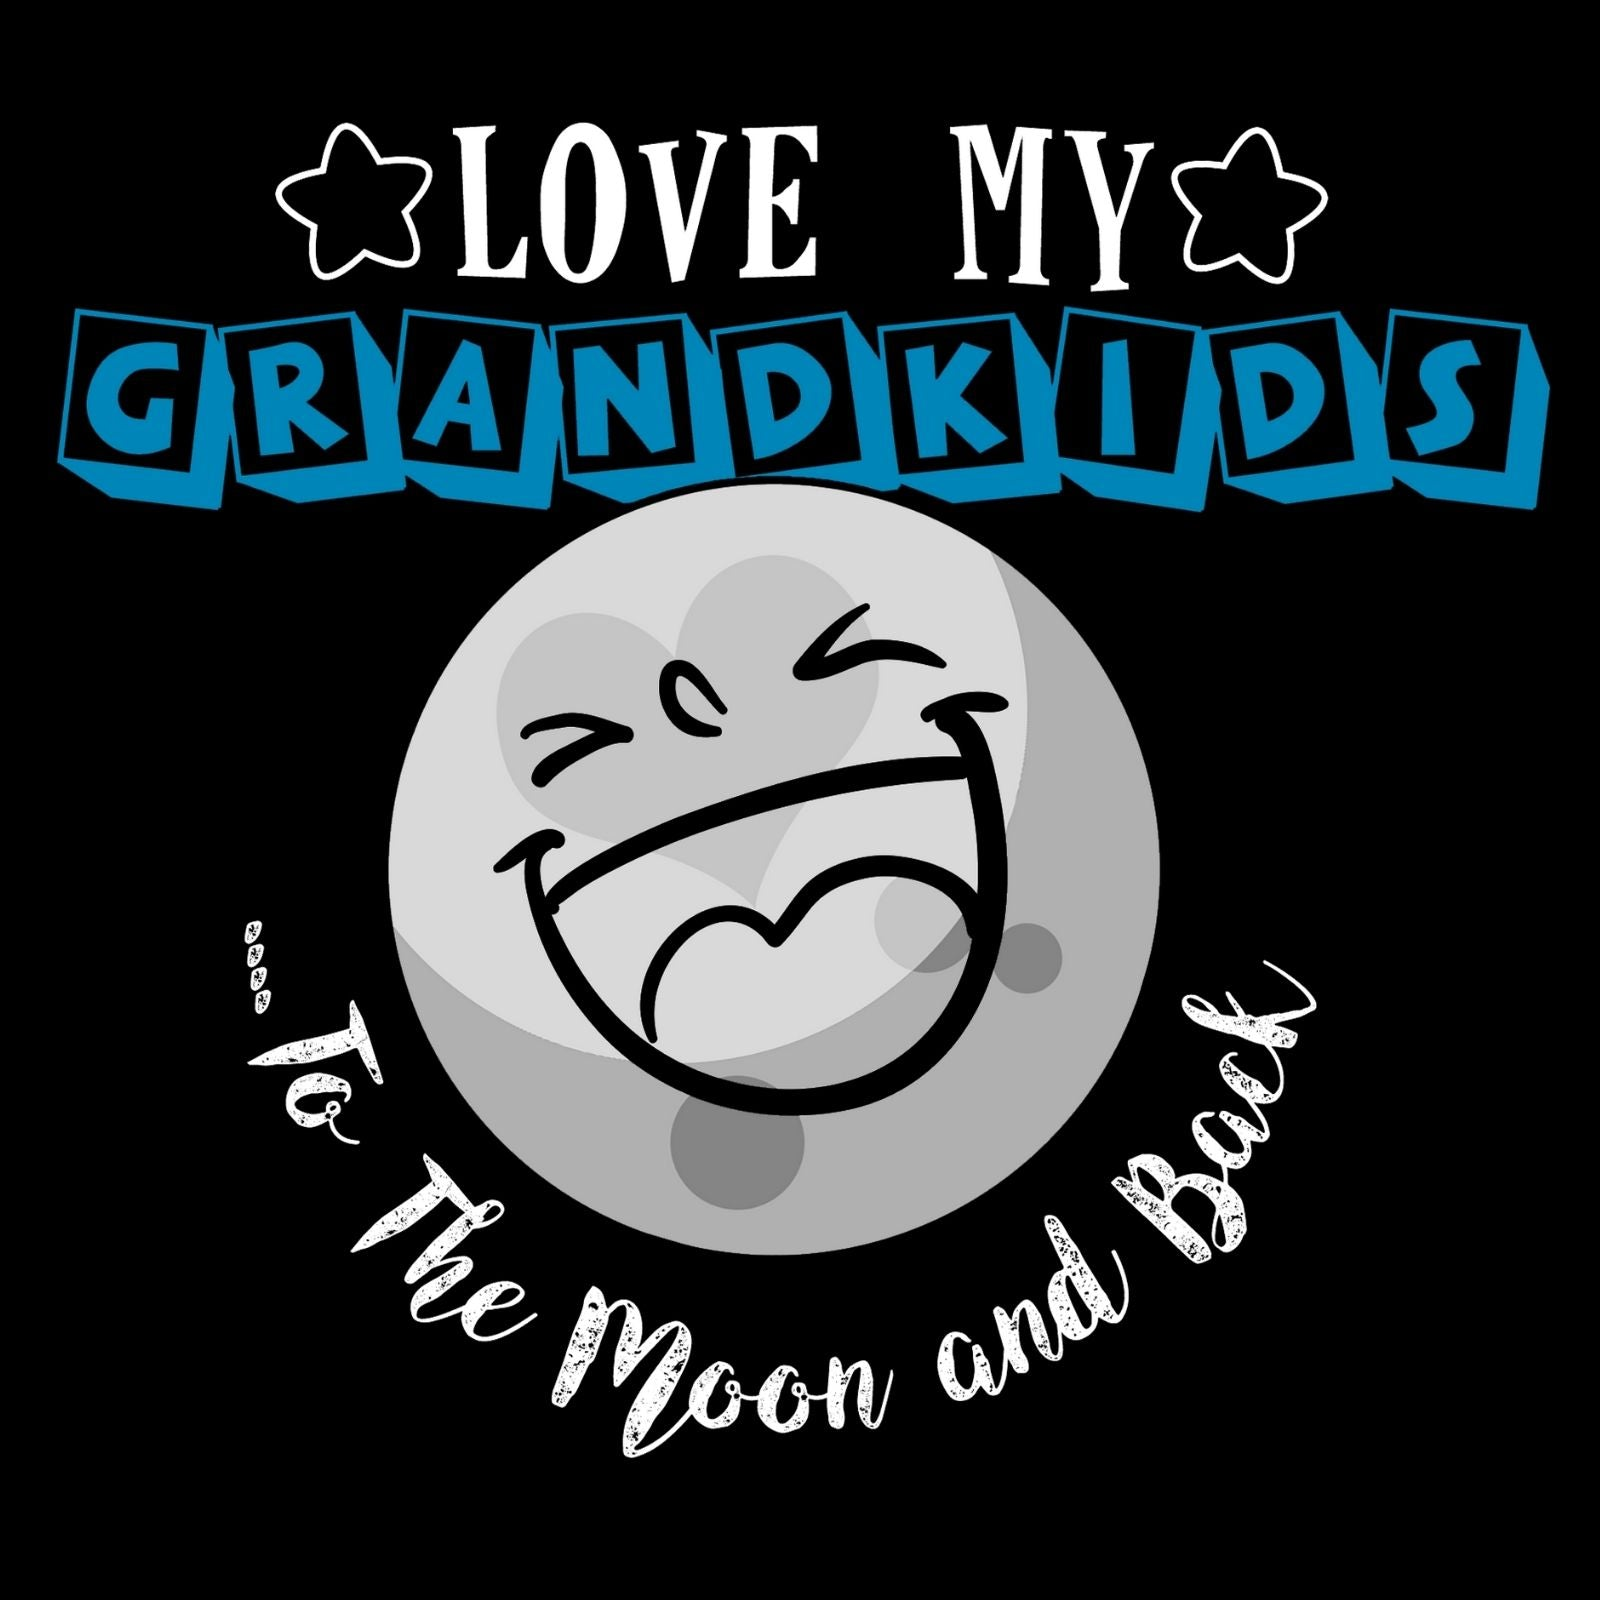 Love My Grandkids To The Moon And Back - Bastard Graphics